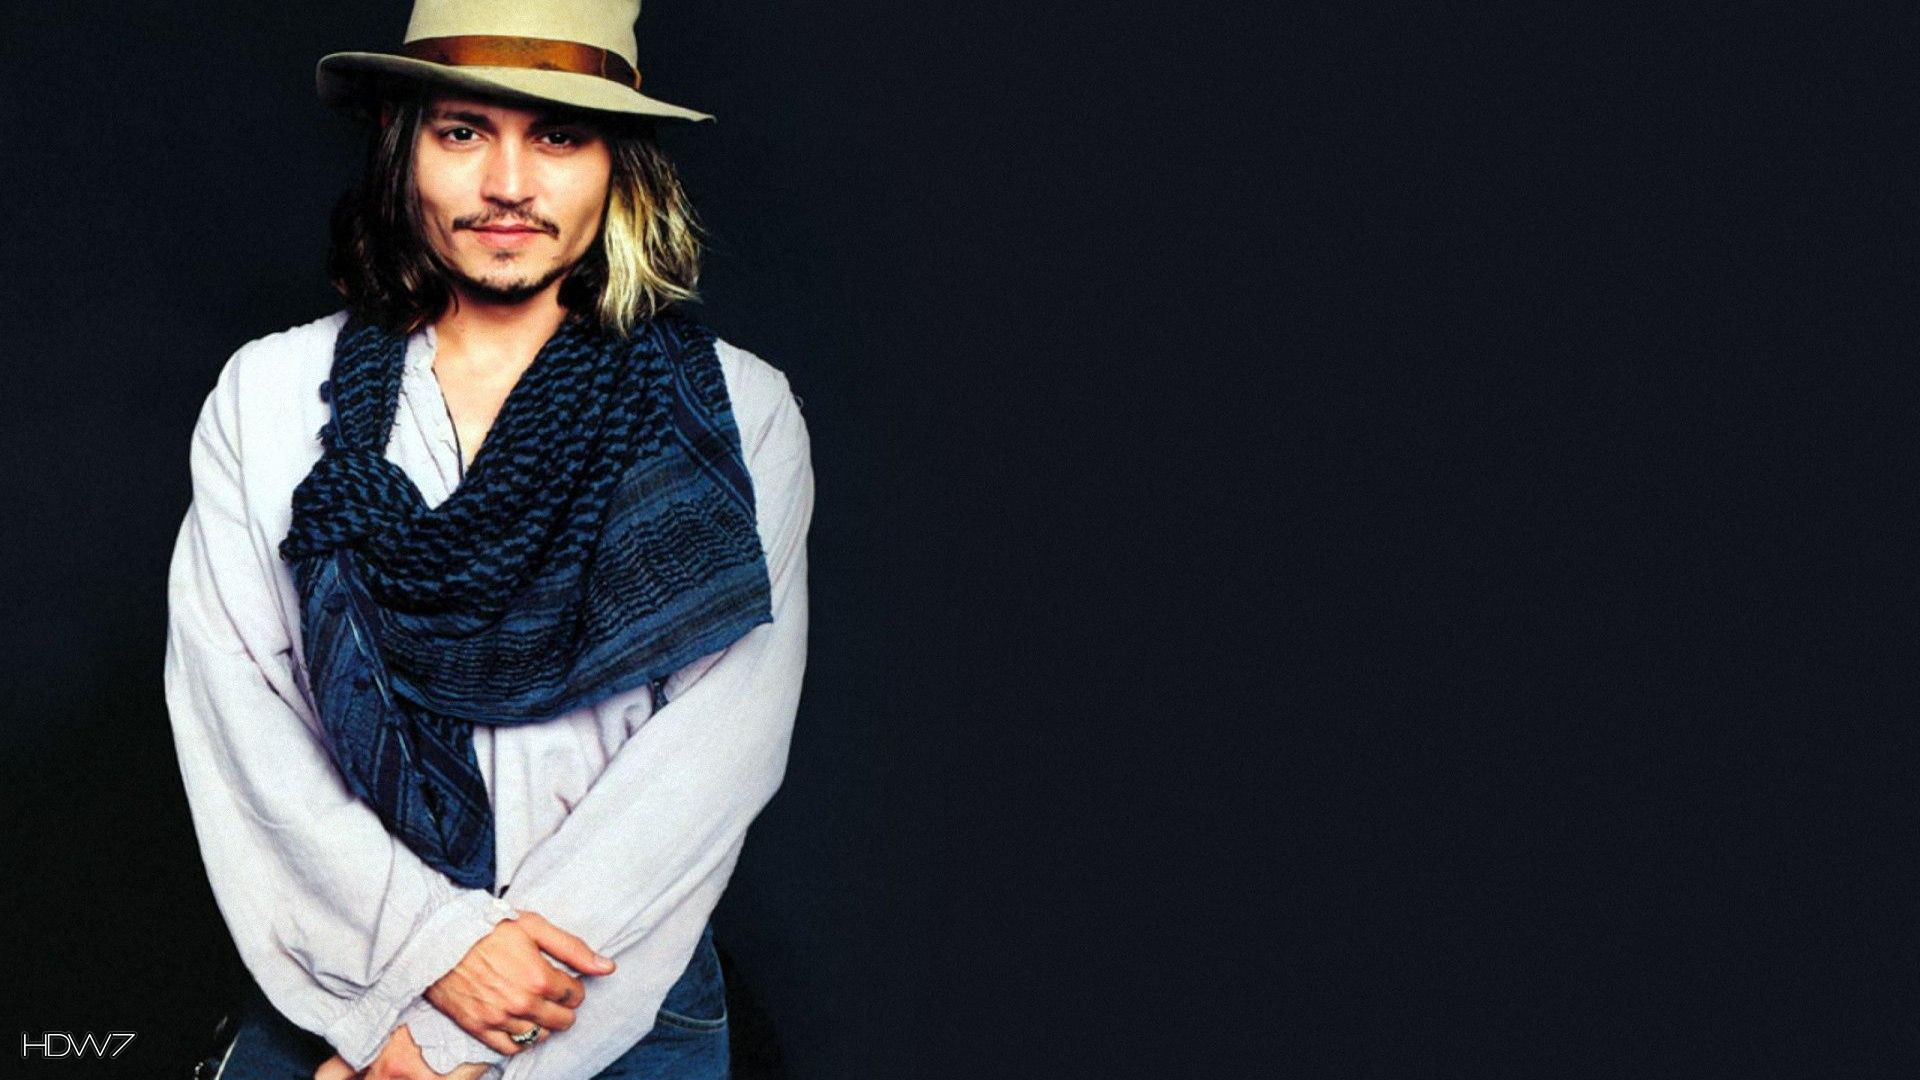 johnny depp with hat 1920x1080